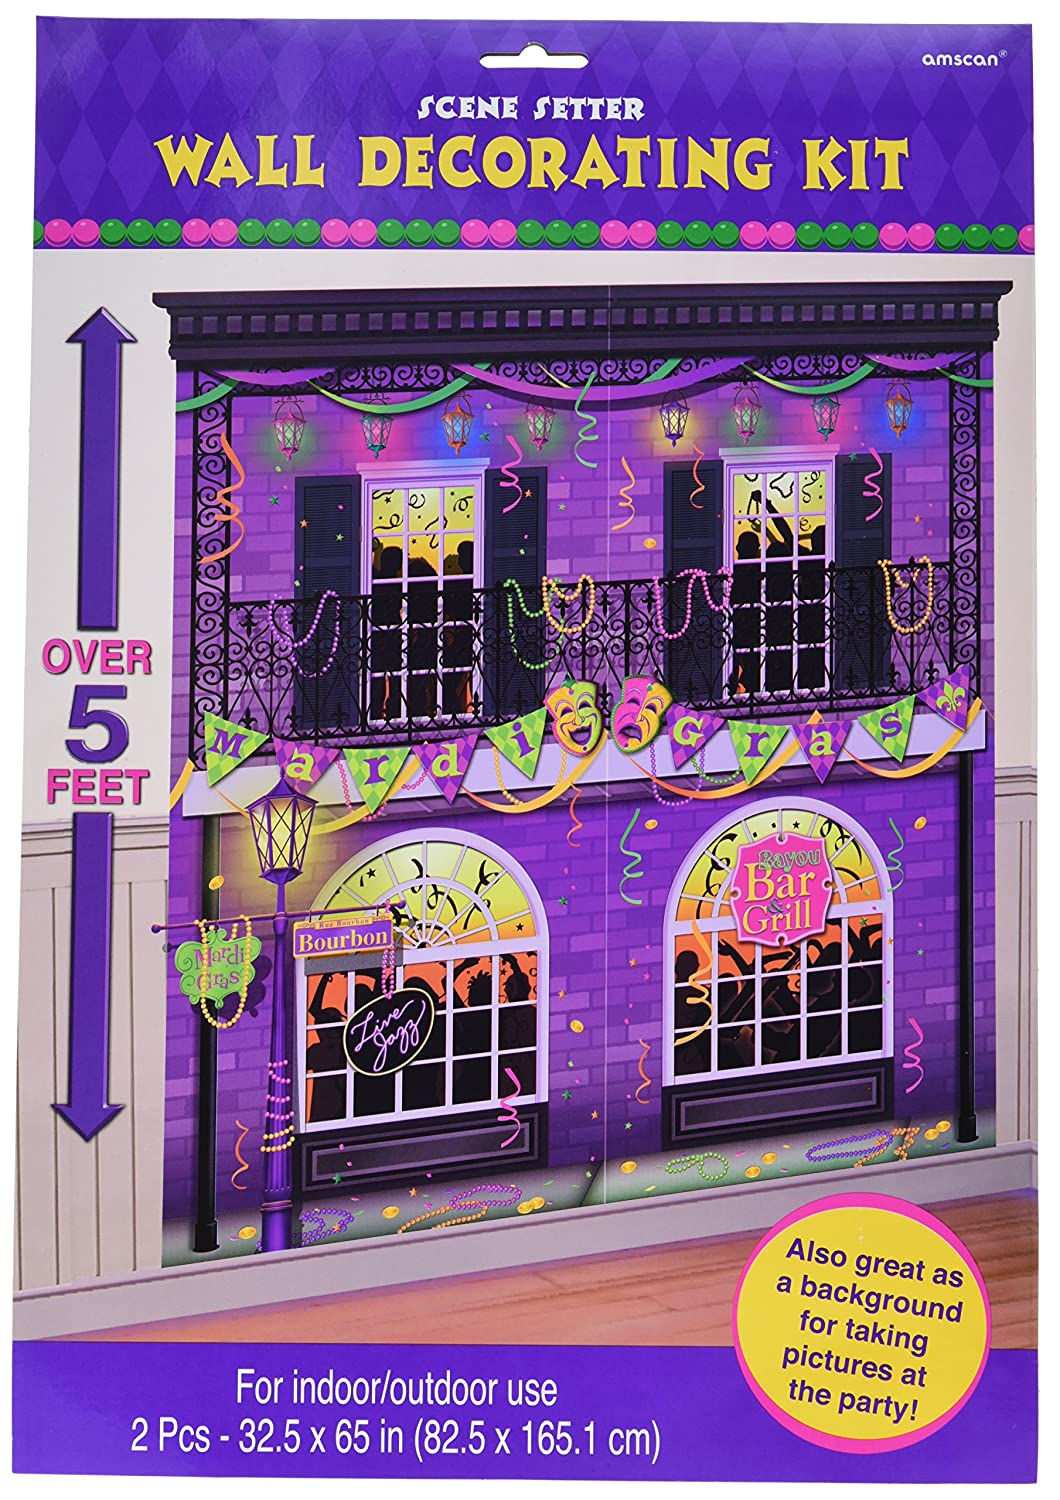 Amazon mardi gras party scene setters wall decorating kit 65 amazon mardi gras party scene setters wall decorating kit 65 x 65 pack of 2 toys games amipublicfo Images